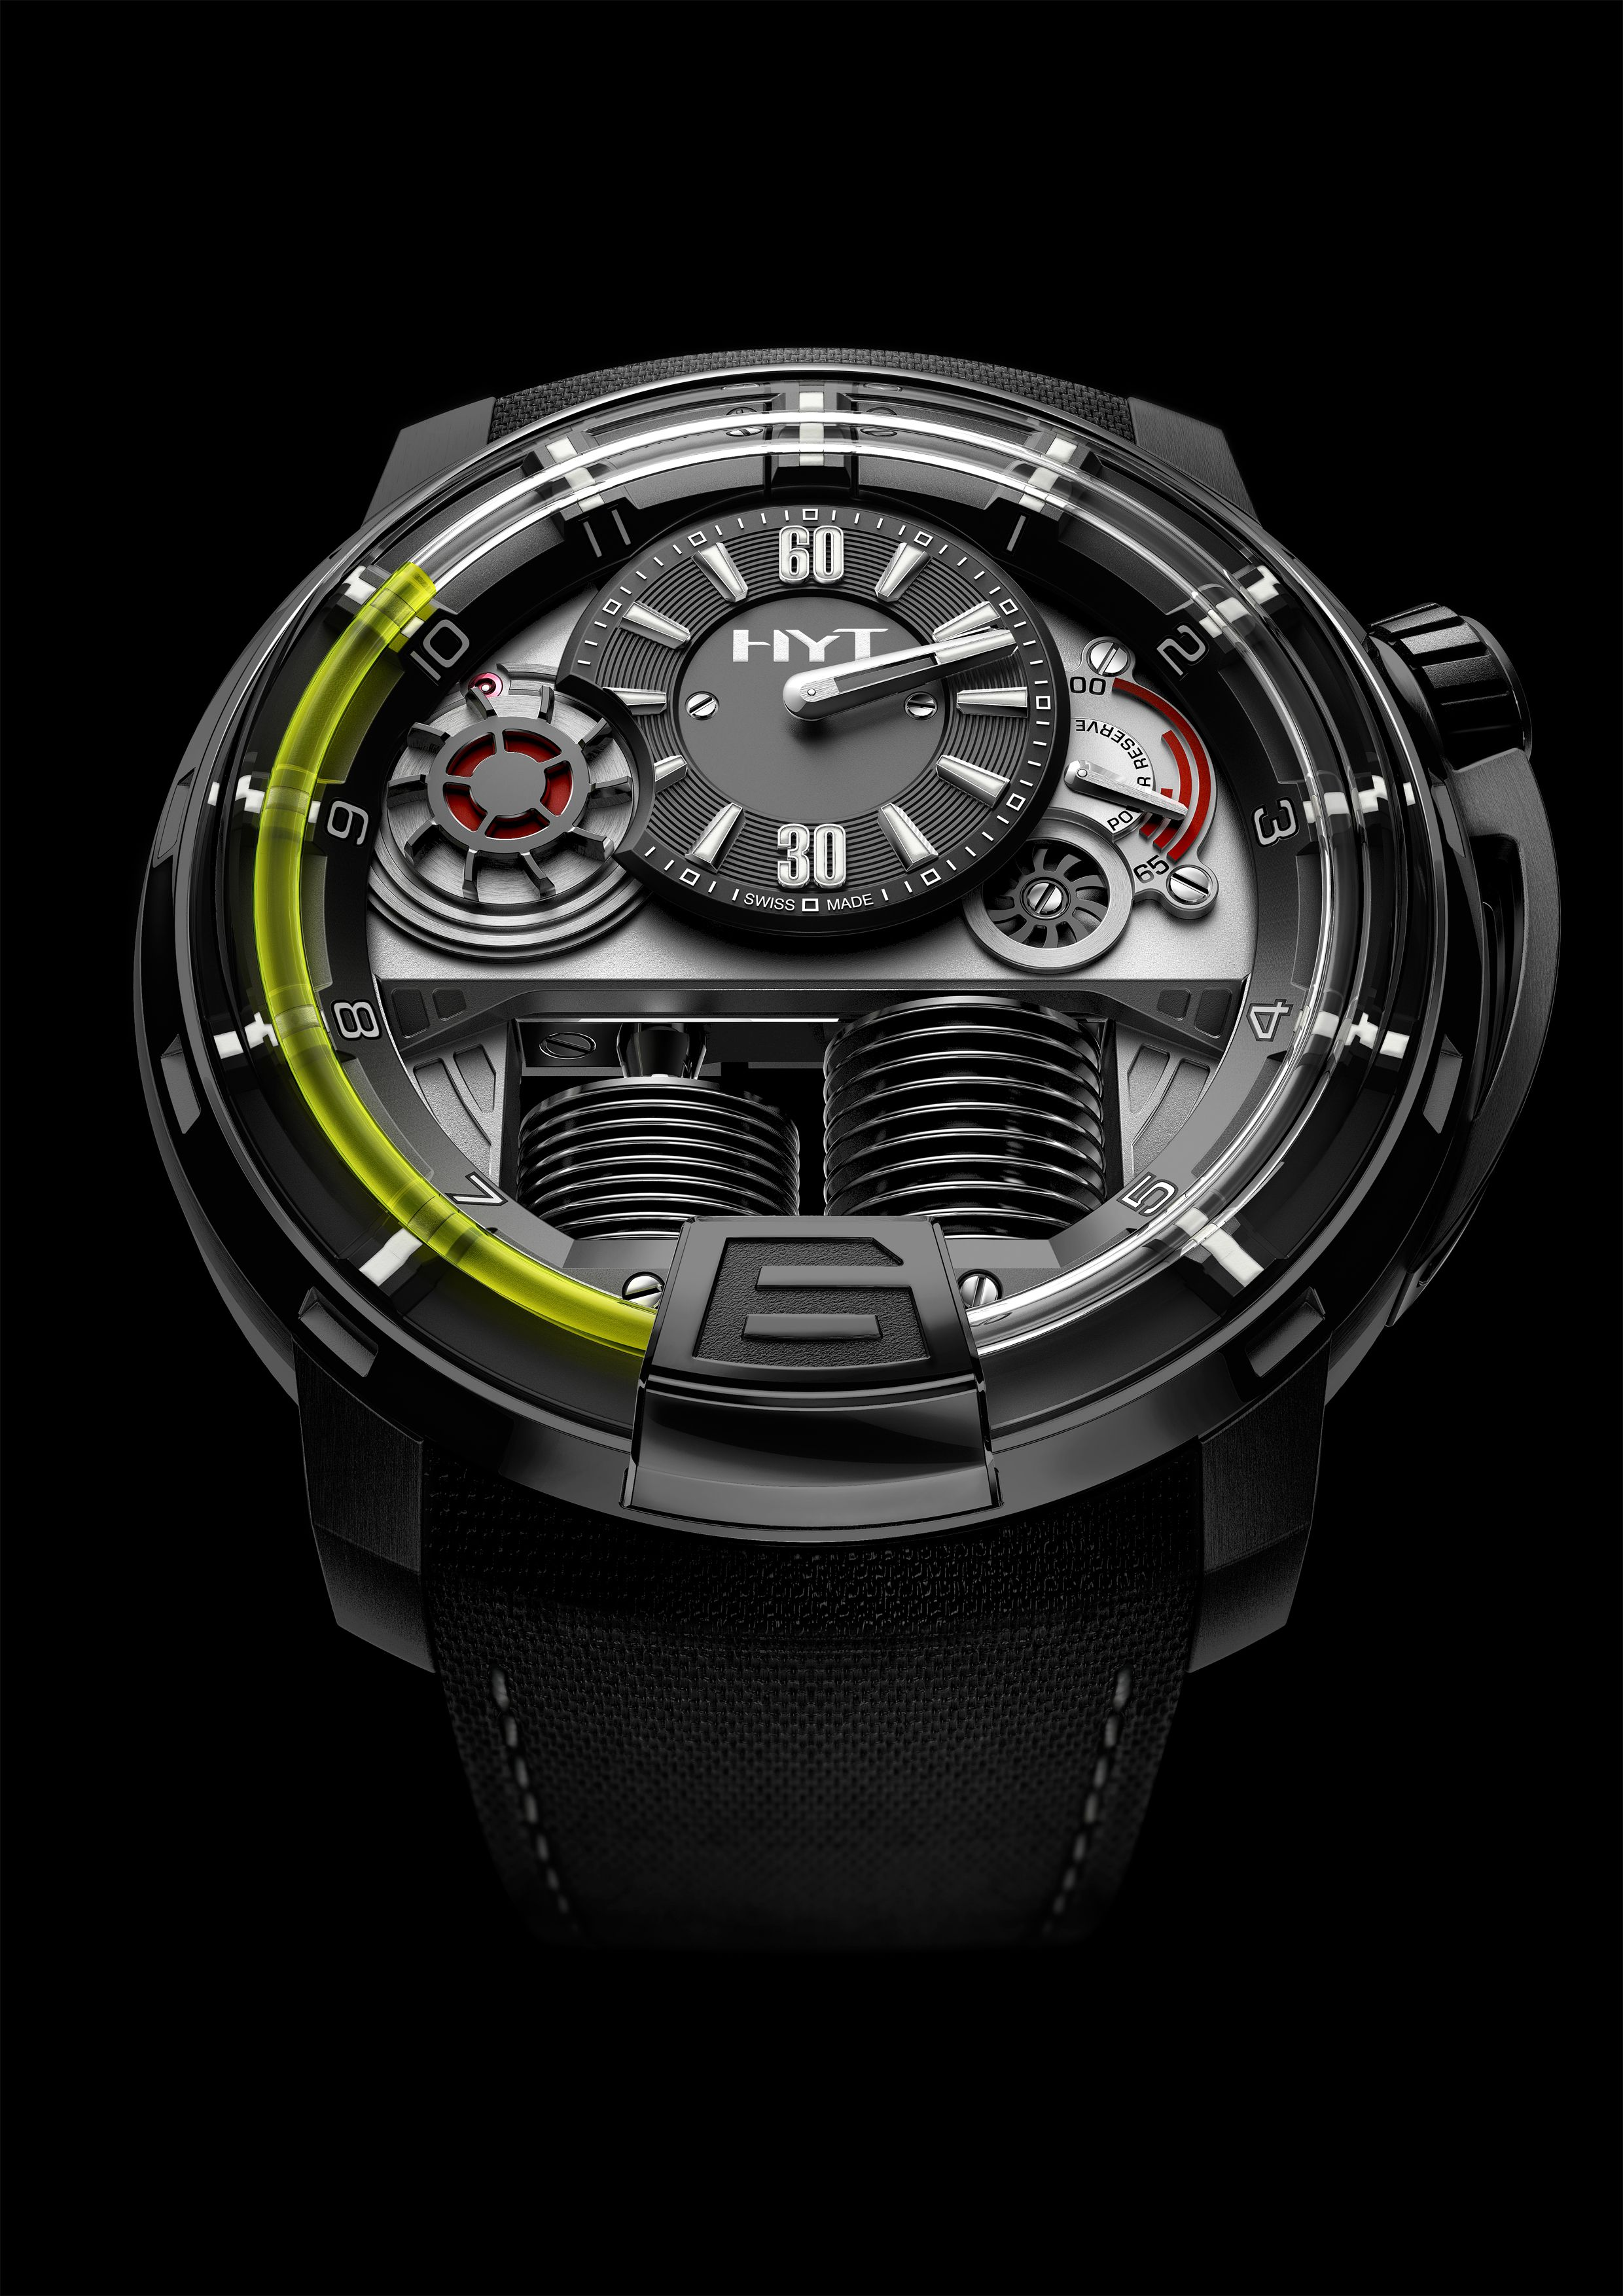 liquid collection hyt amp black gold dial pink watches on strap dlc titanium silver